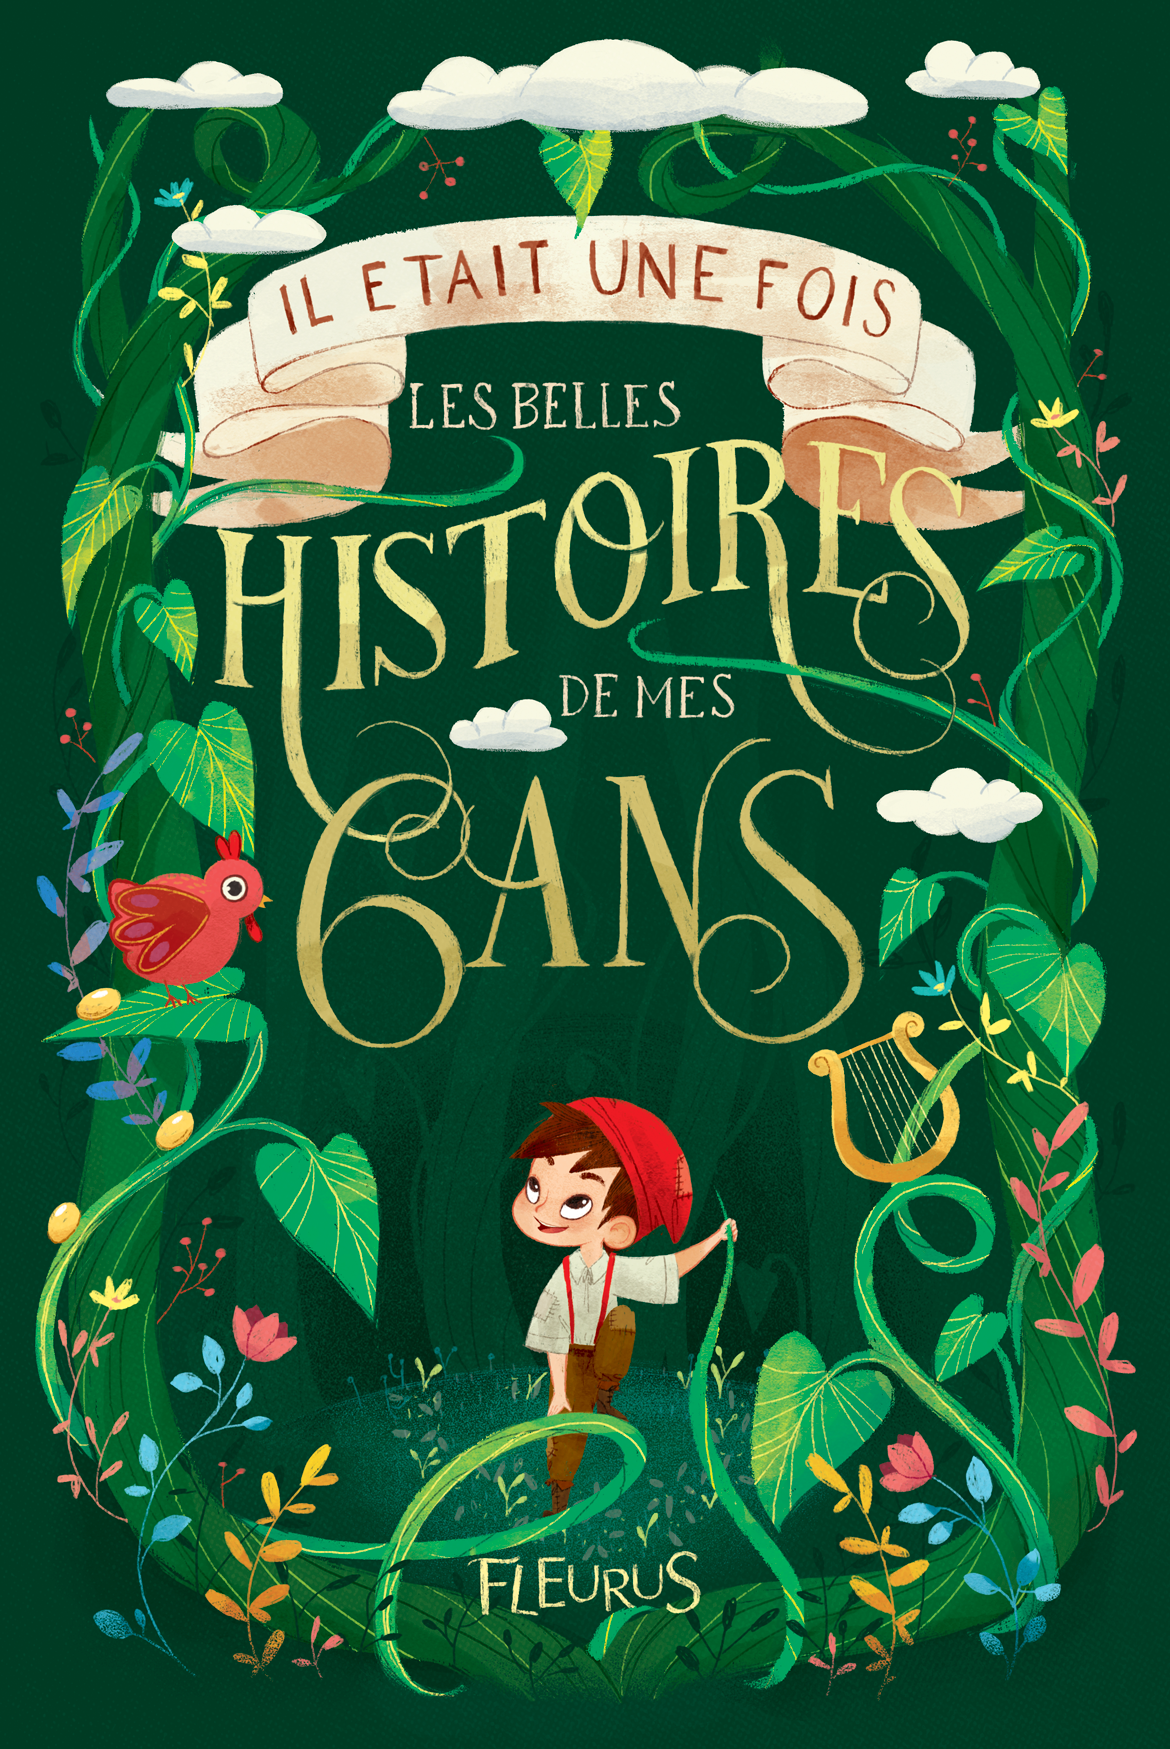 English Book Cover Design For Kids ~ Children s book covers for fleurus editions on behance